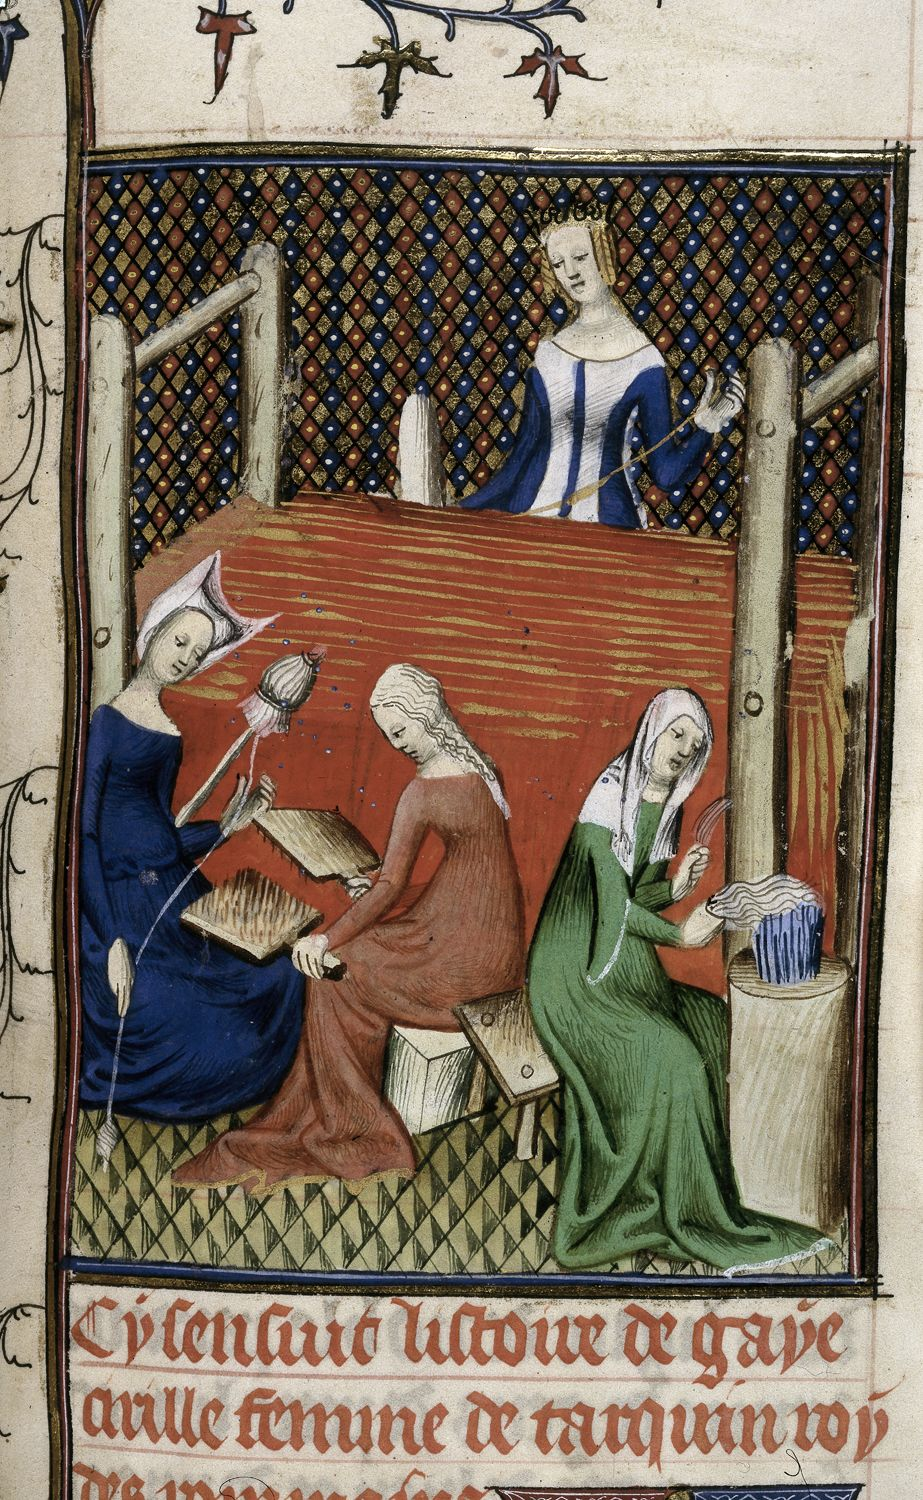 A medieval depiction of women spinning and carding wool, while Tanaquil operates her loom. Scenes such as this would have been common around Flanders at the time. Created by  Giovanni Boccaccio  (1313-06-16 — 1375-12-21).  Source .